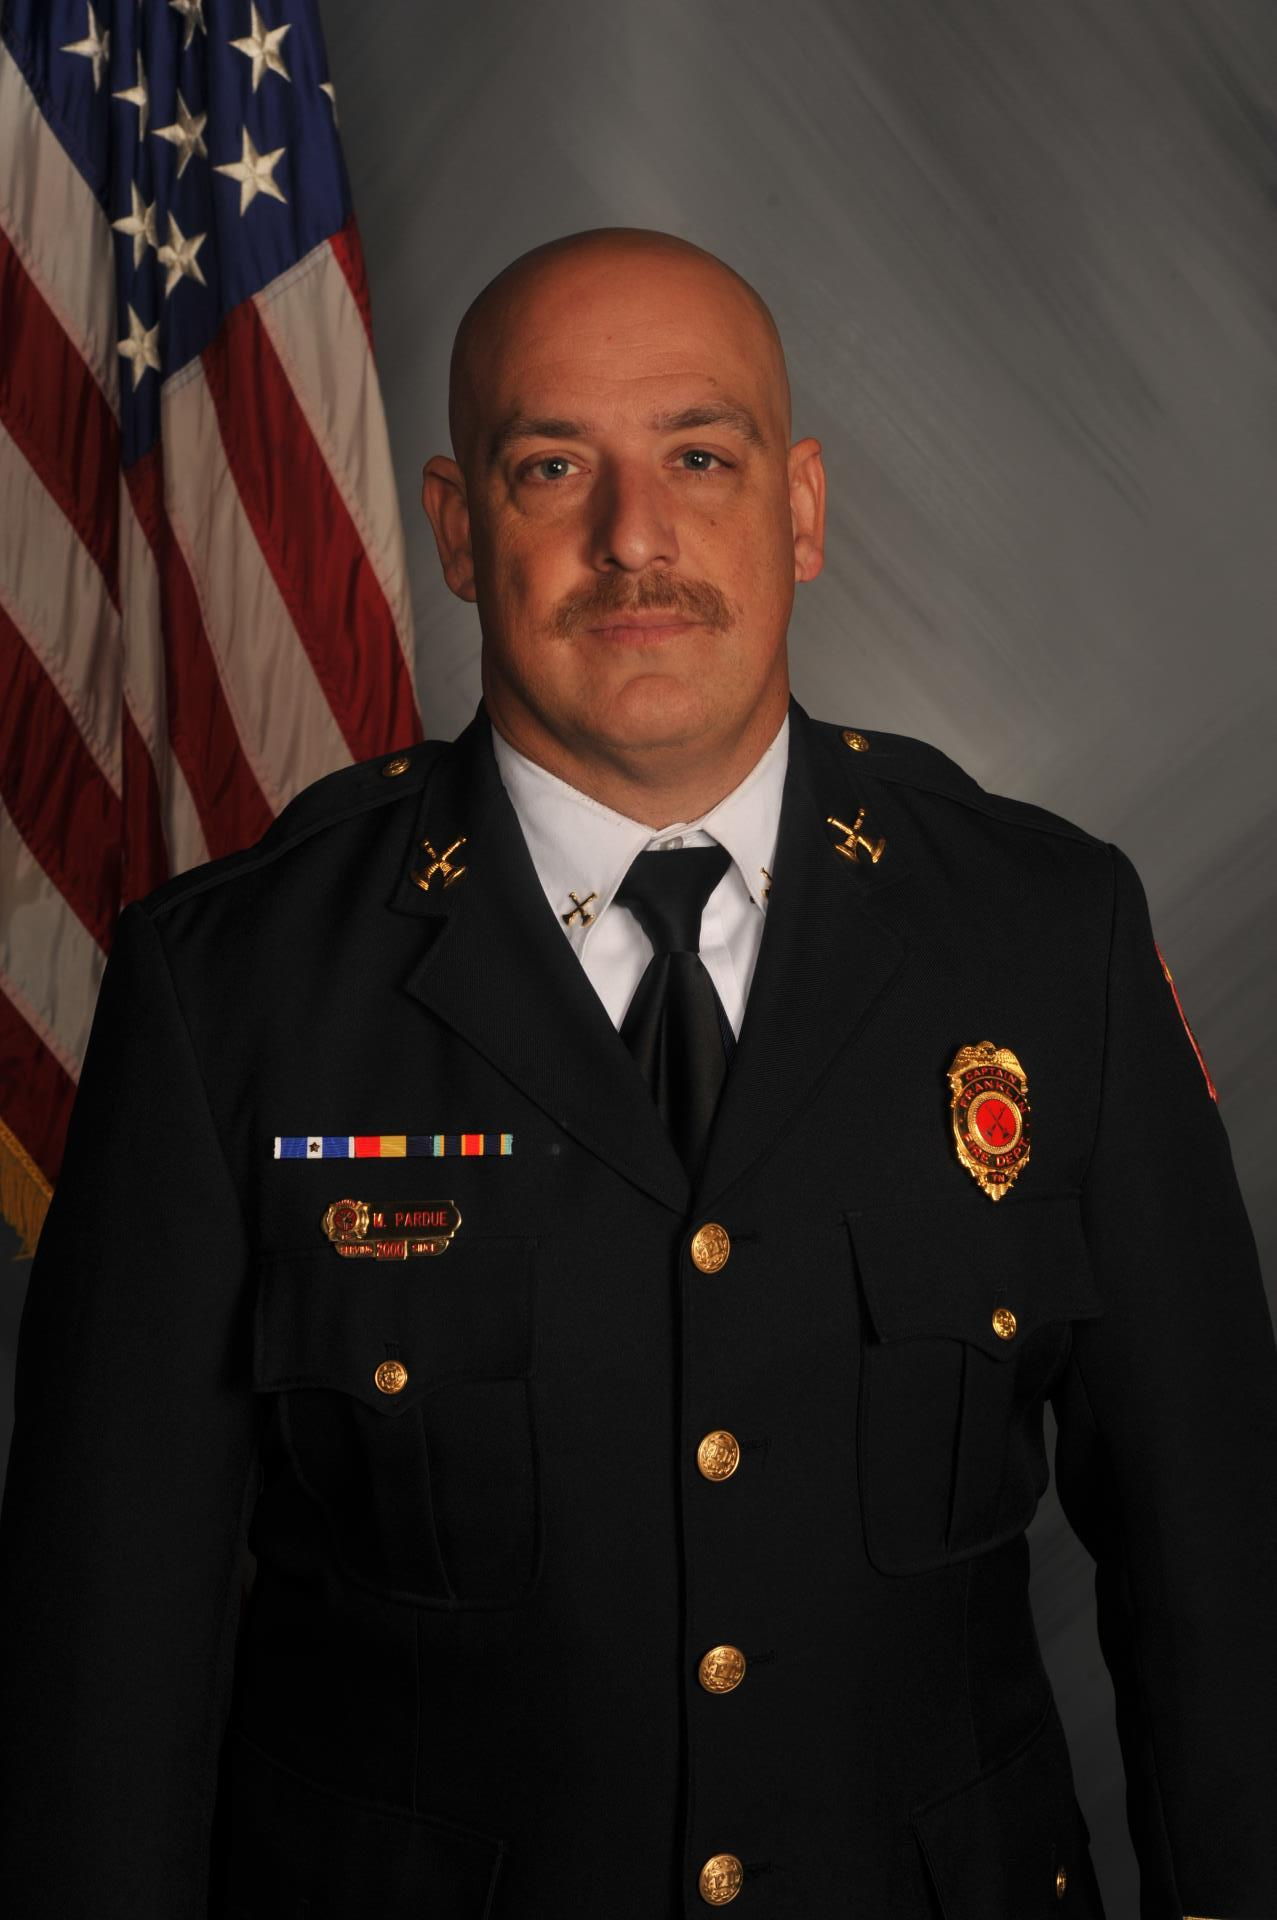 Battalion Chief Michael Pardue